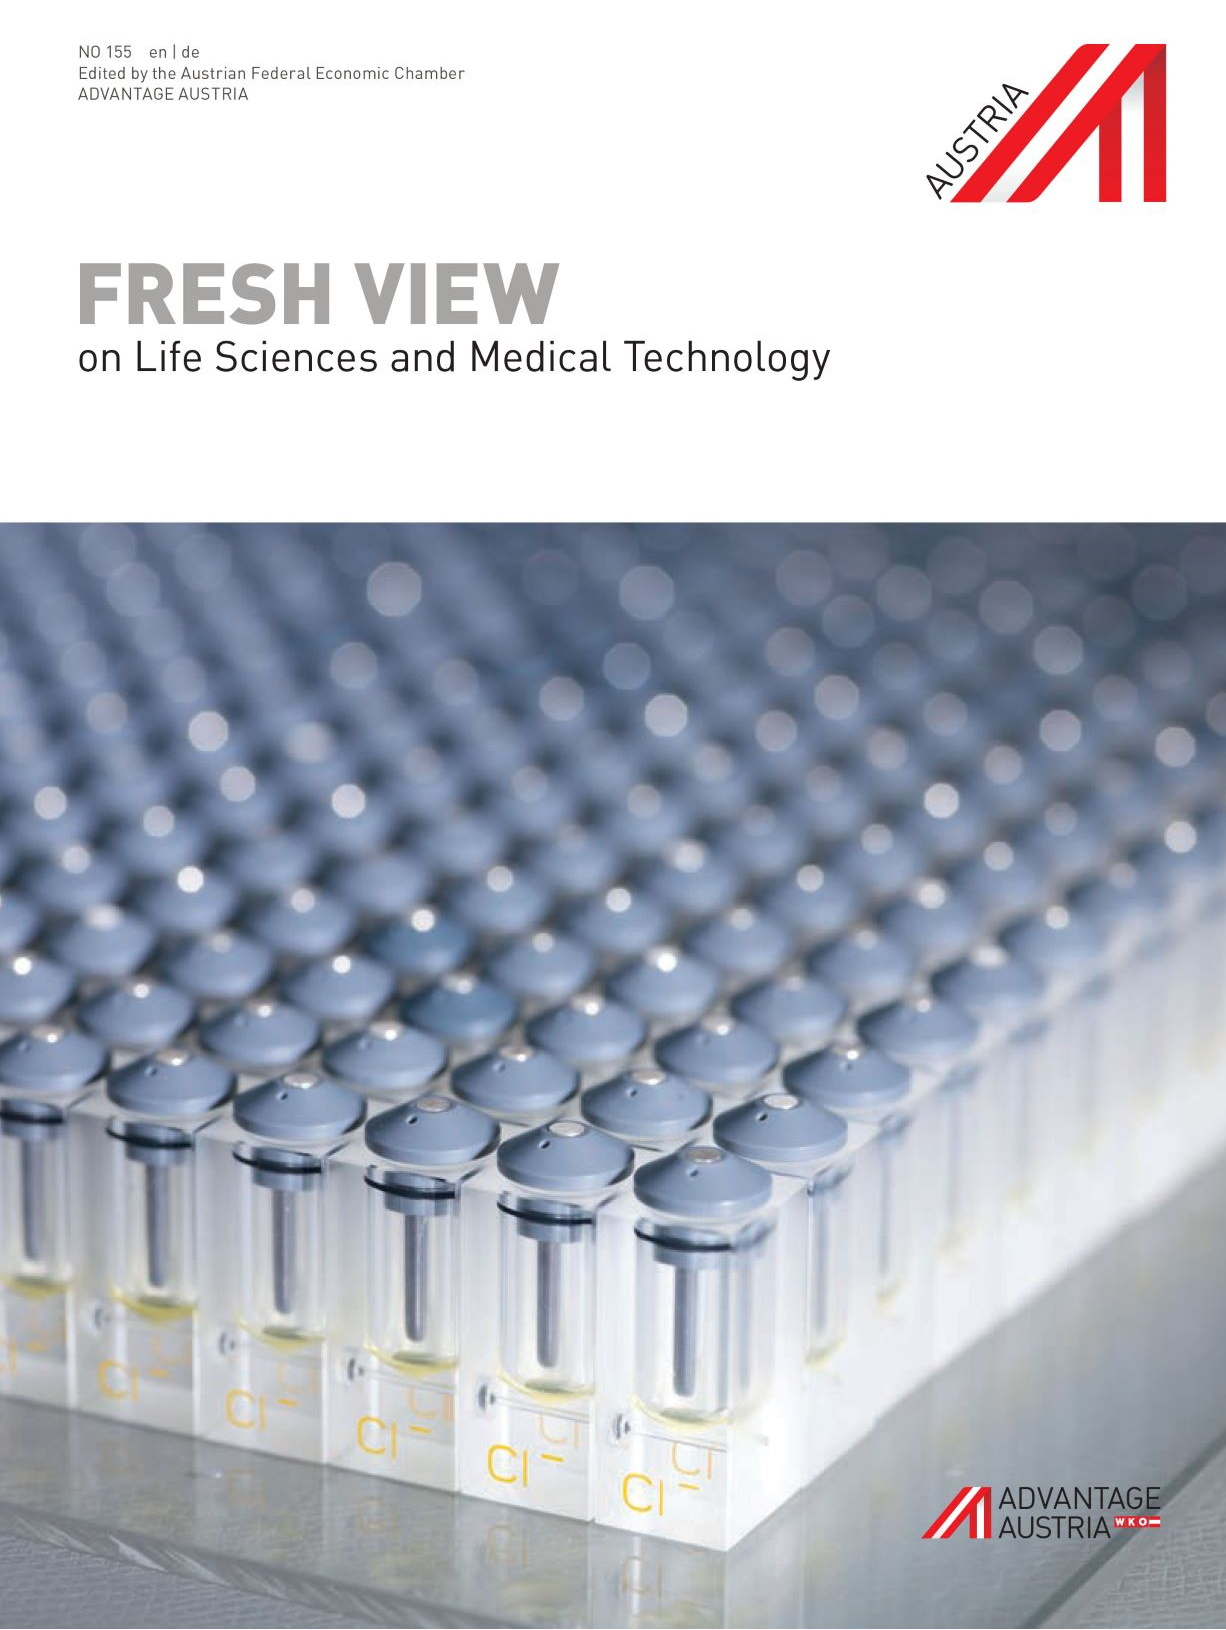 No. 155, Fresh View, Life Sciences and Medical Technology, en | de